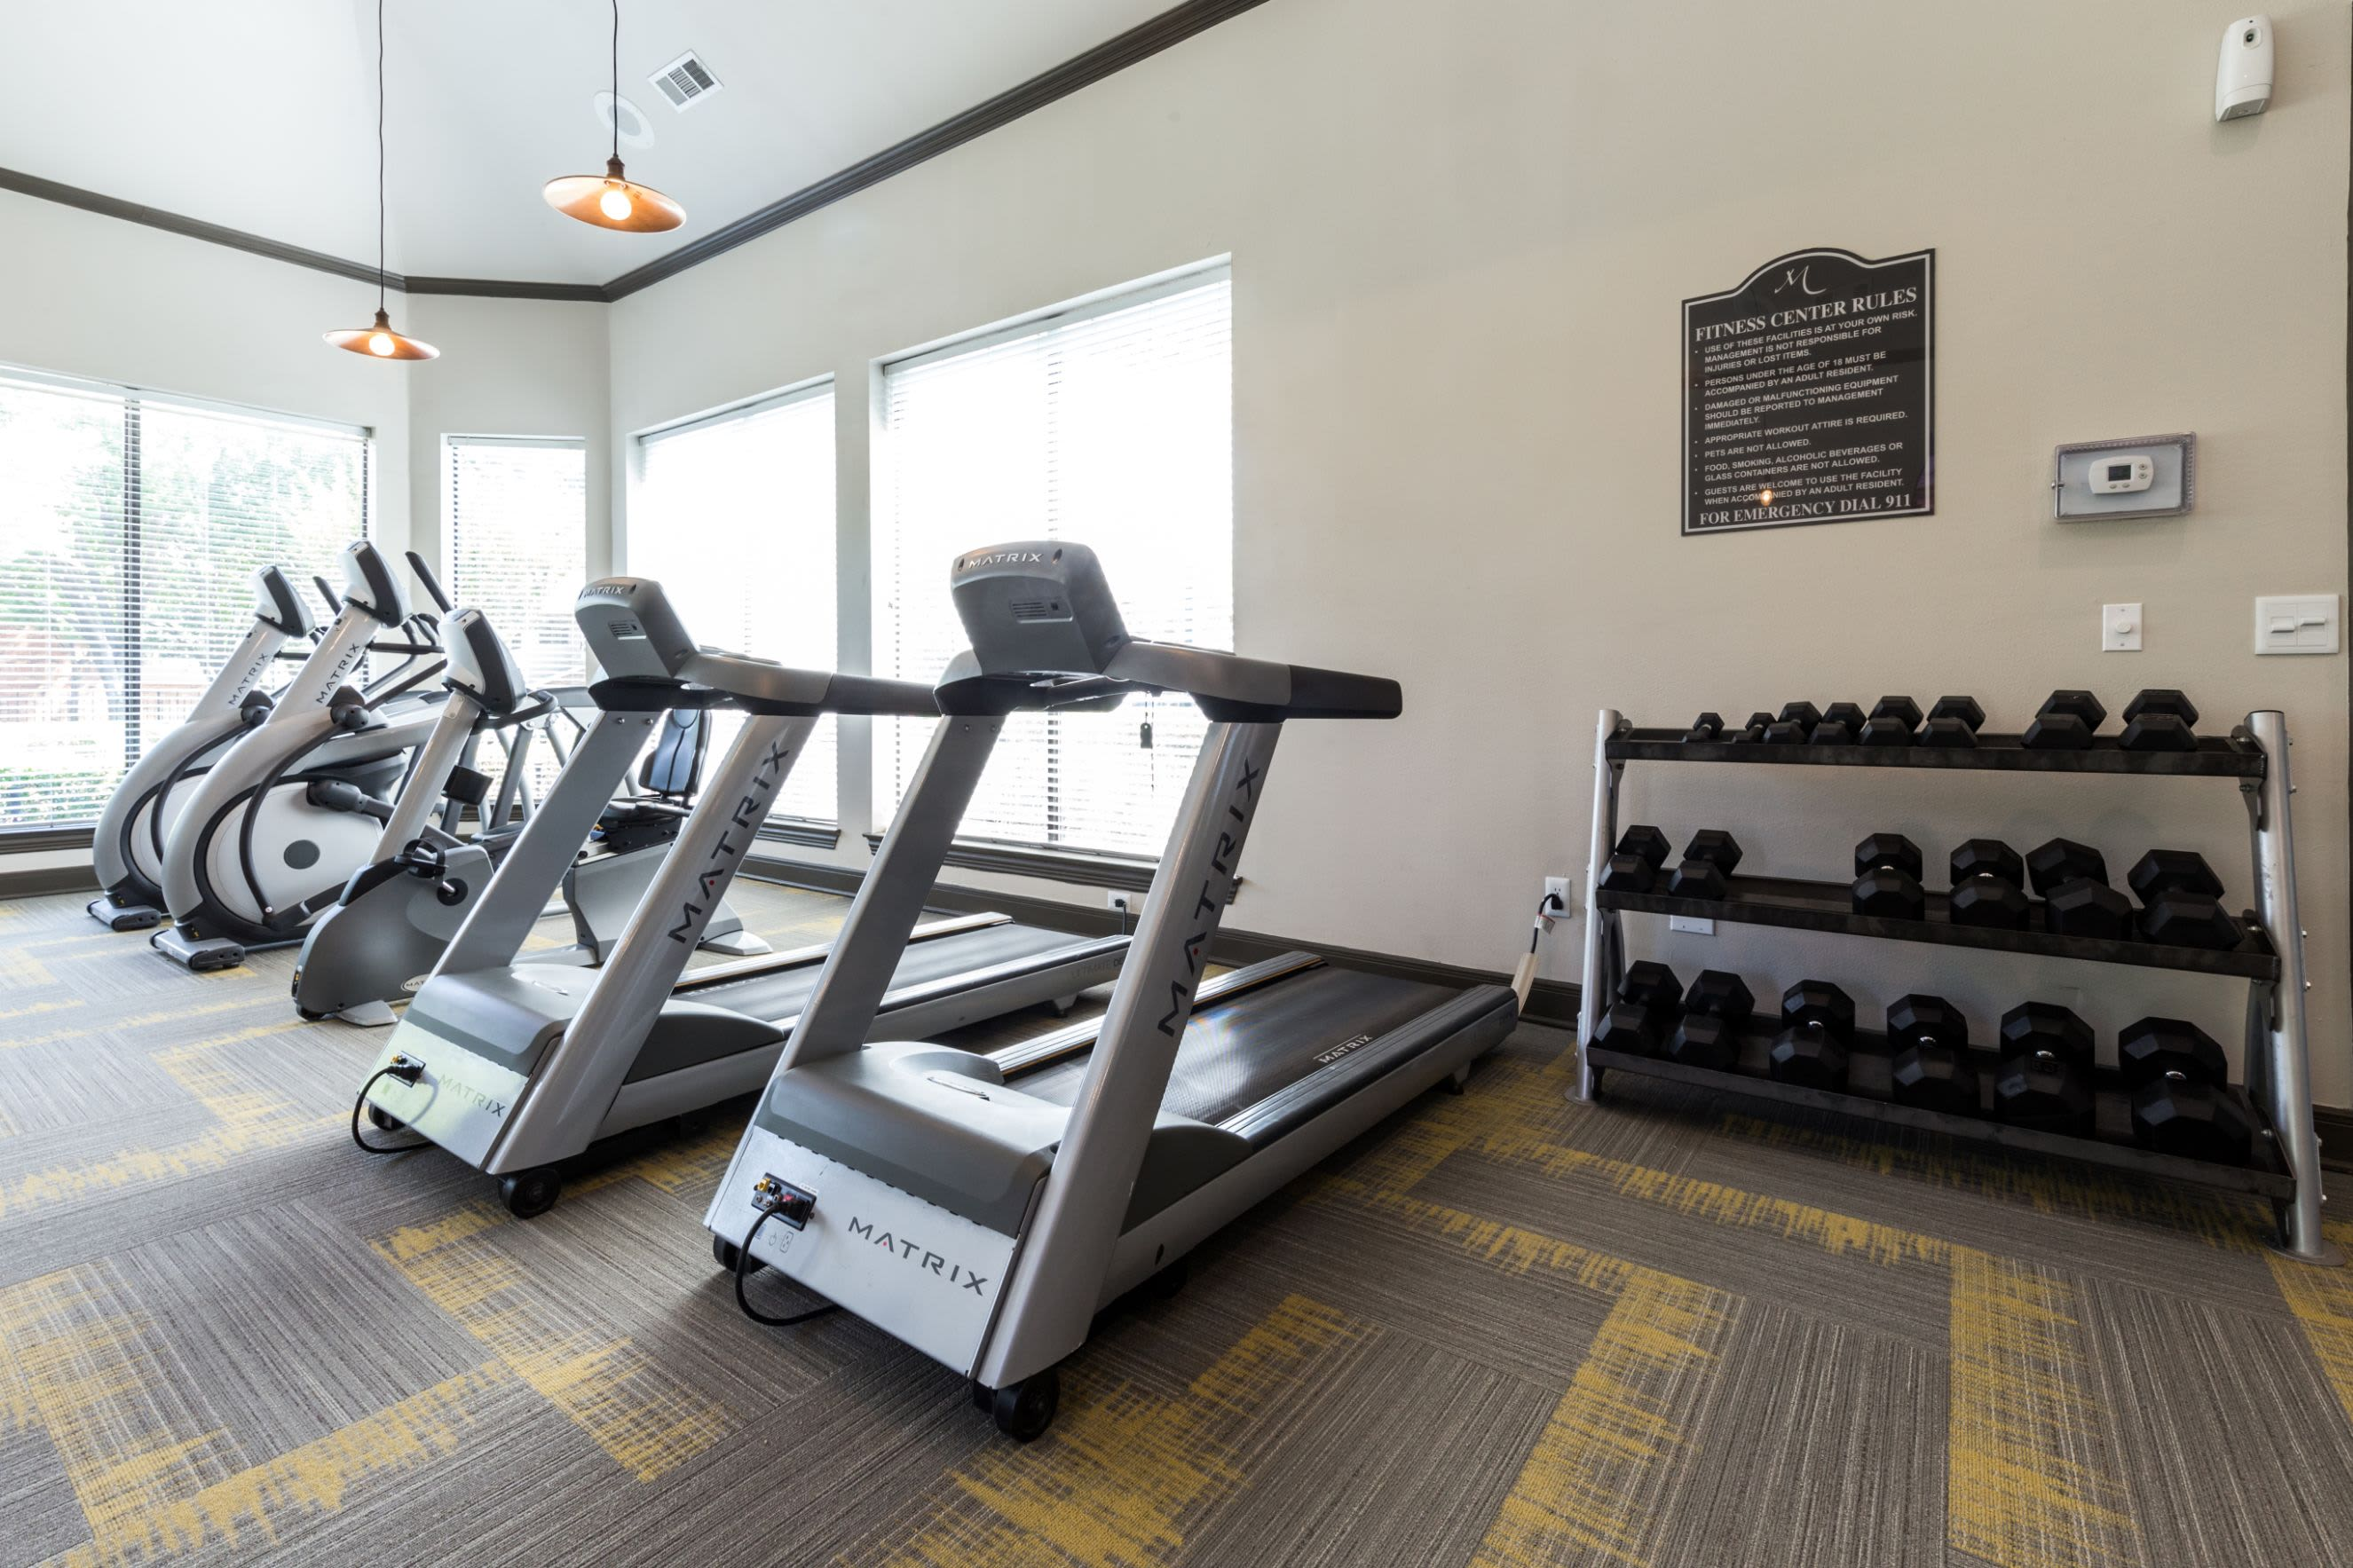 Cardio machines in the fitness center at Marquis at Stonebriar in Frisco, Texas